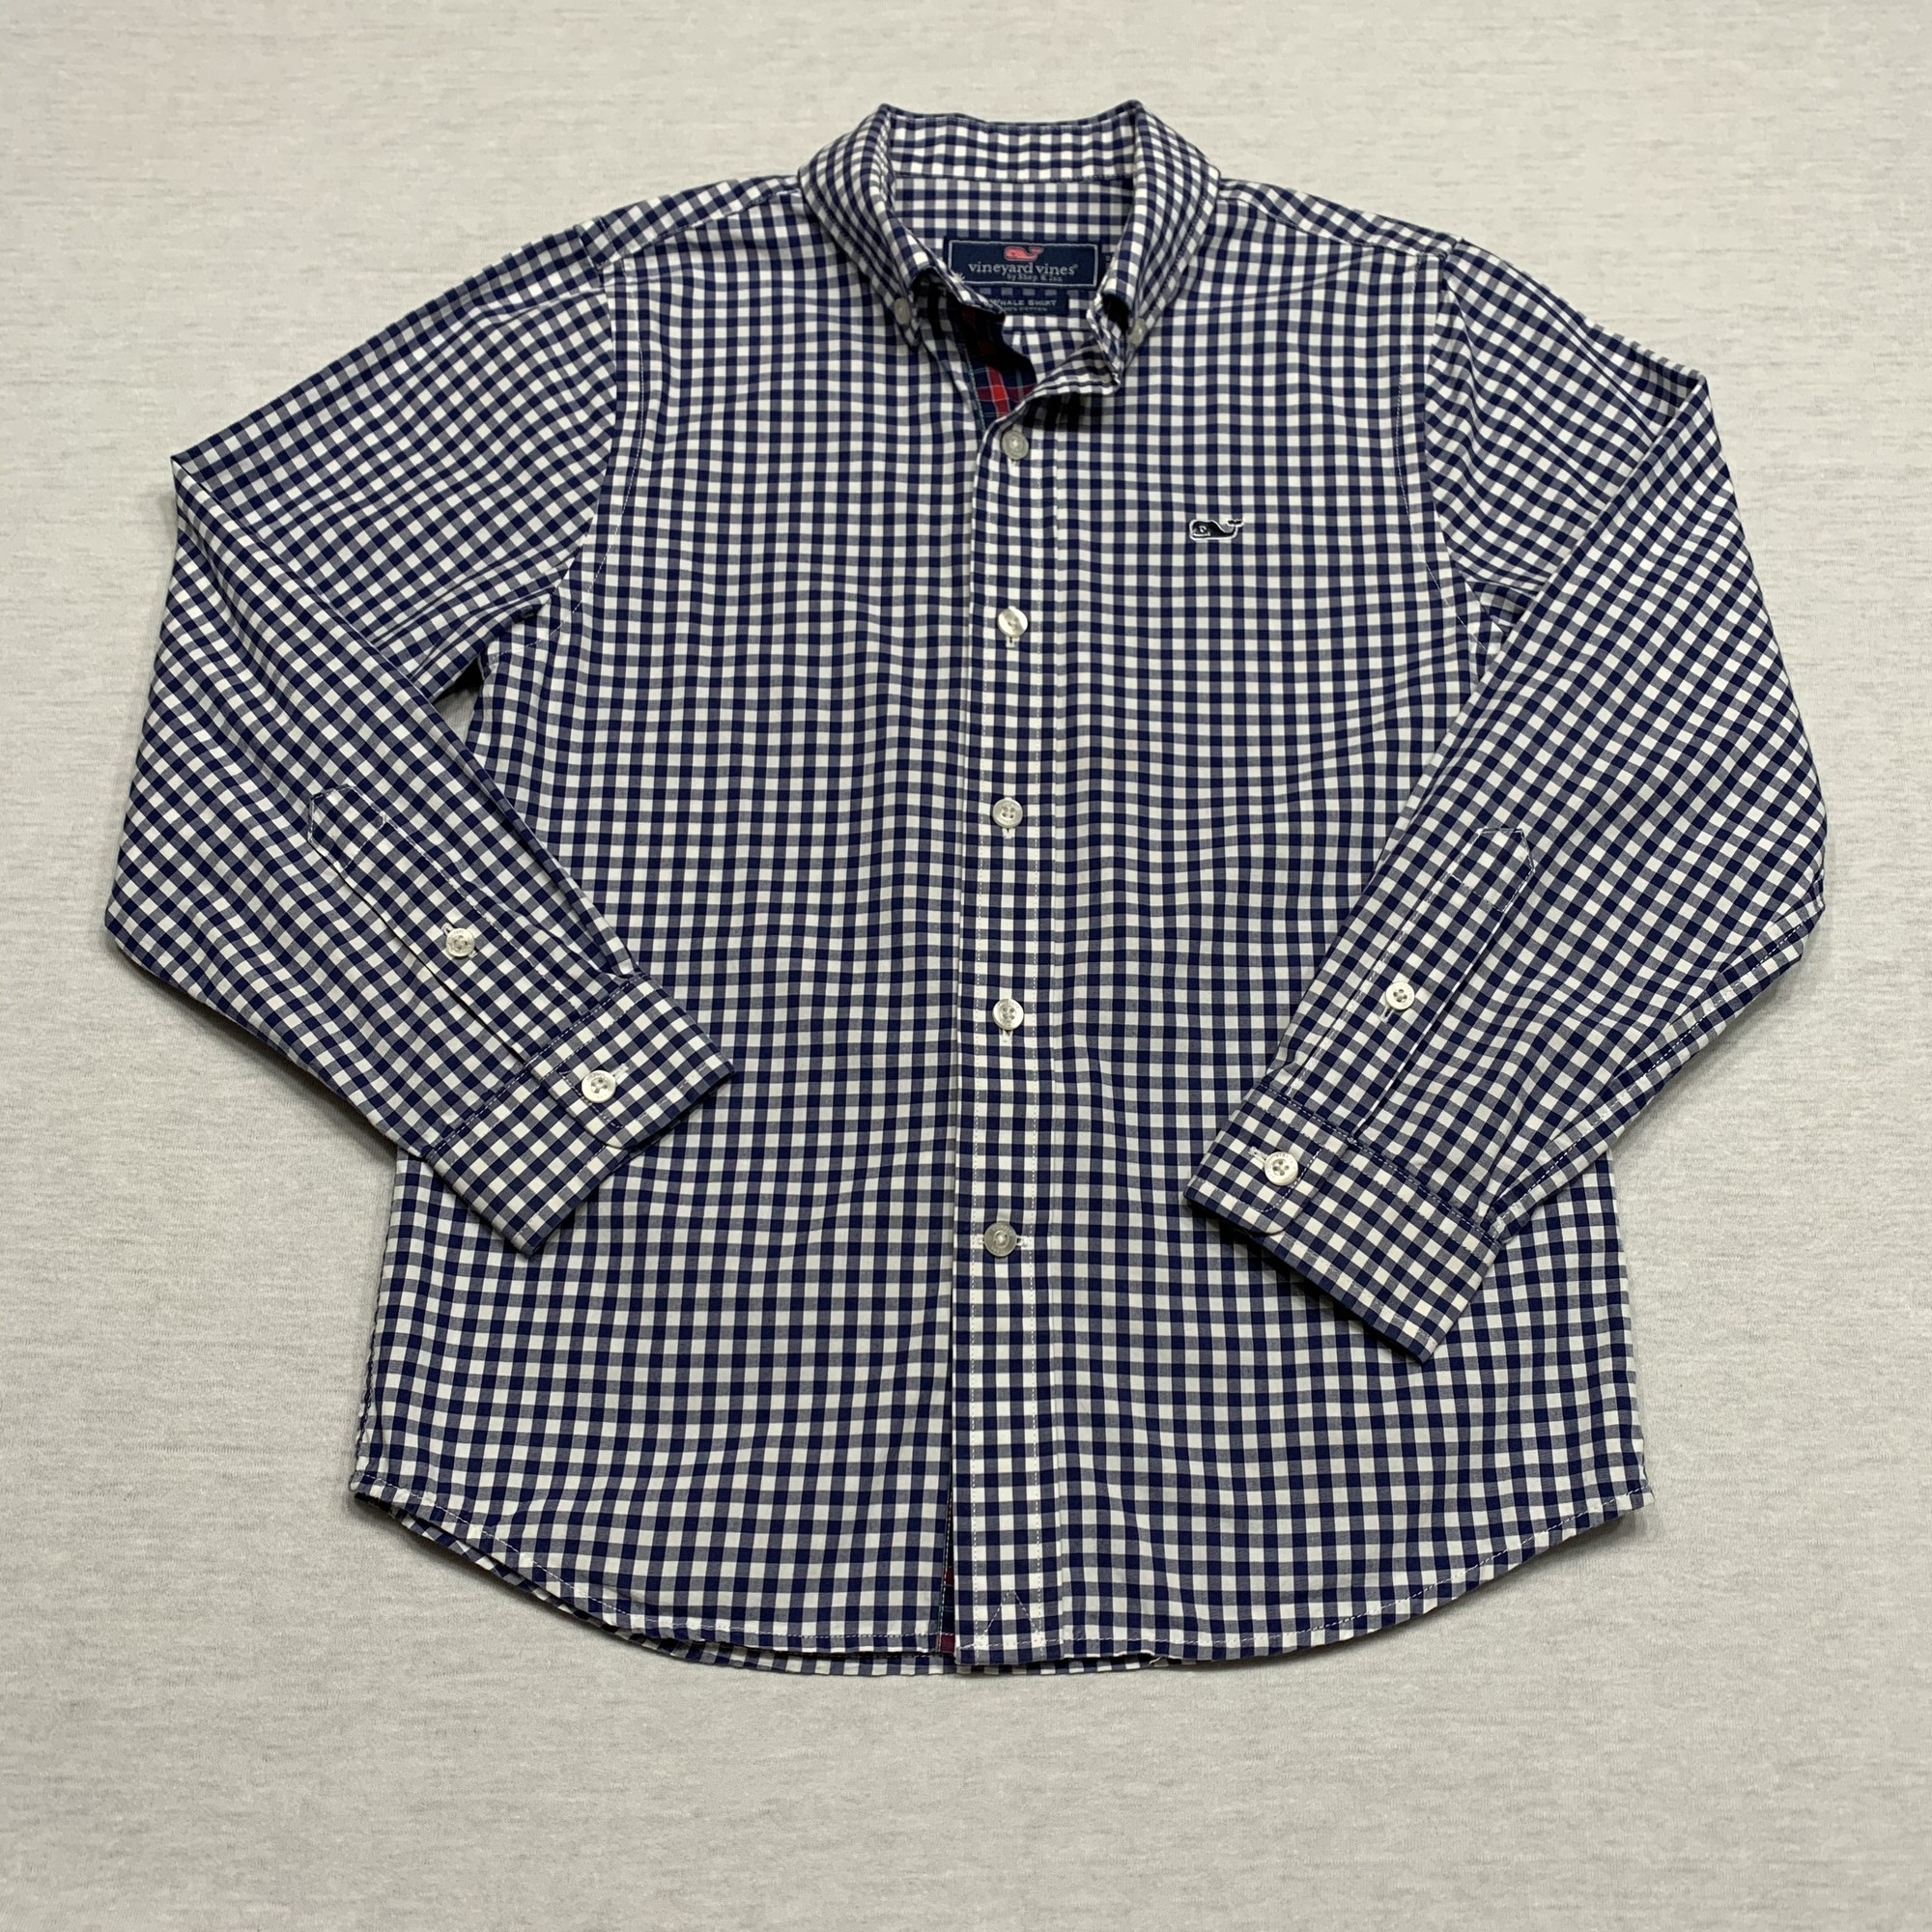 Checked poplin shirt with button-down collar